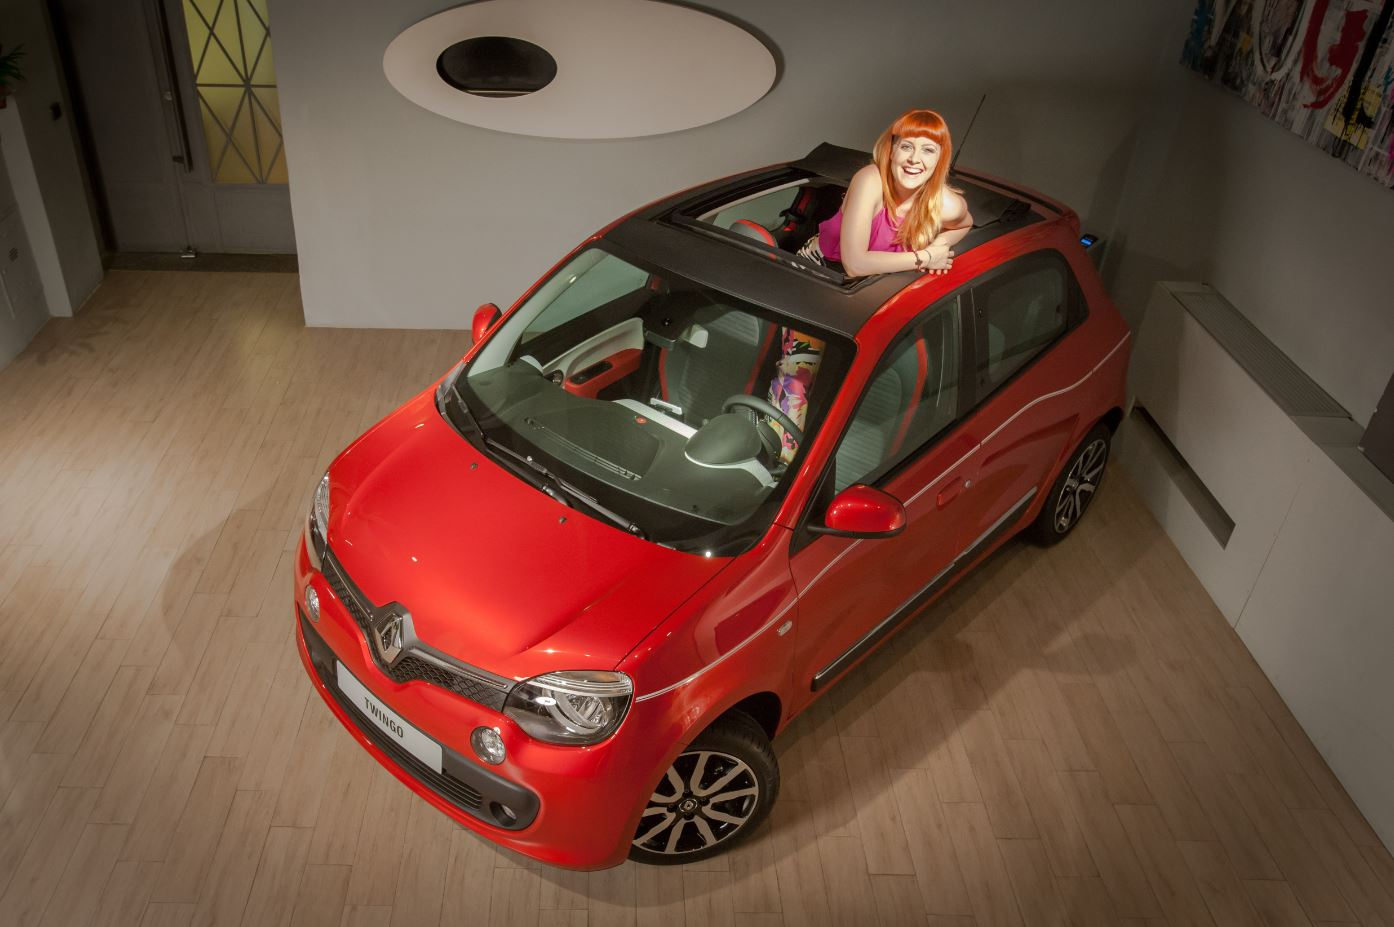 Nuova Renault Twingo: via al waiting program